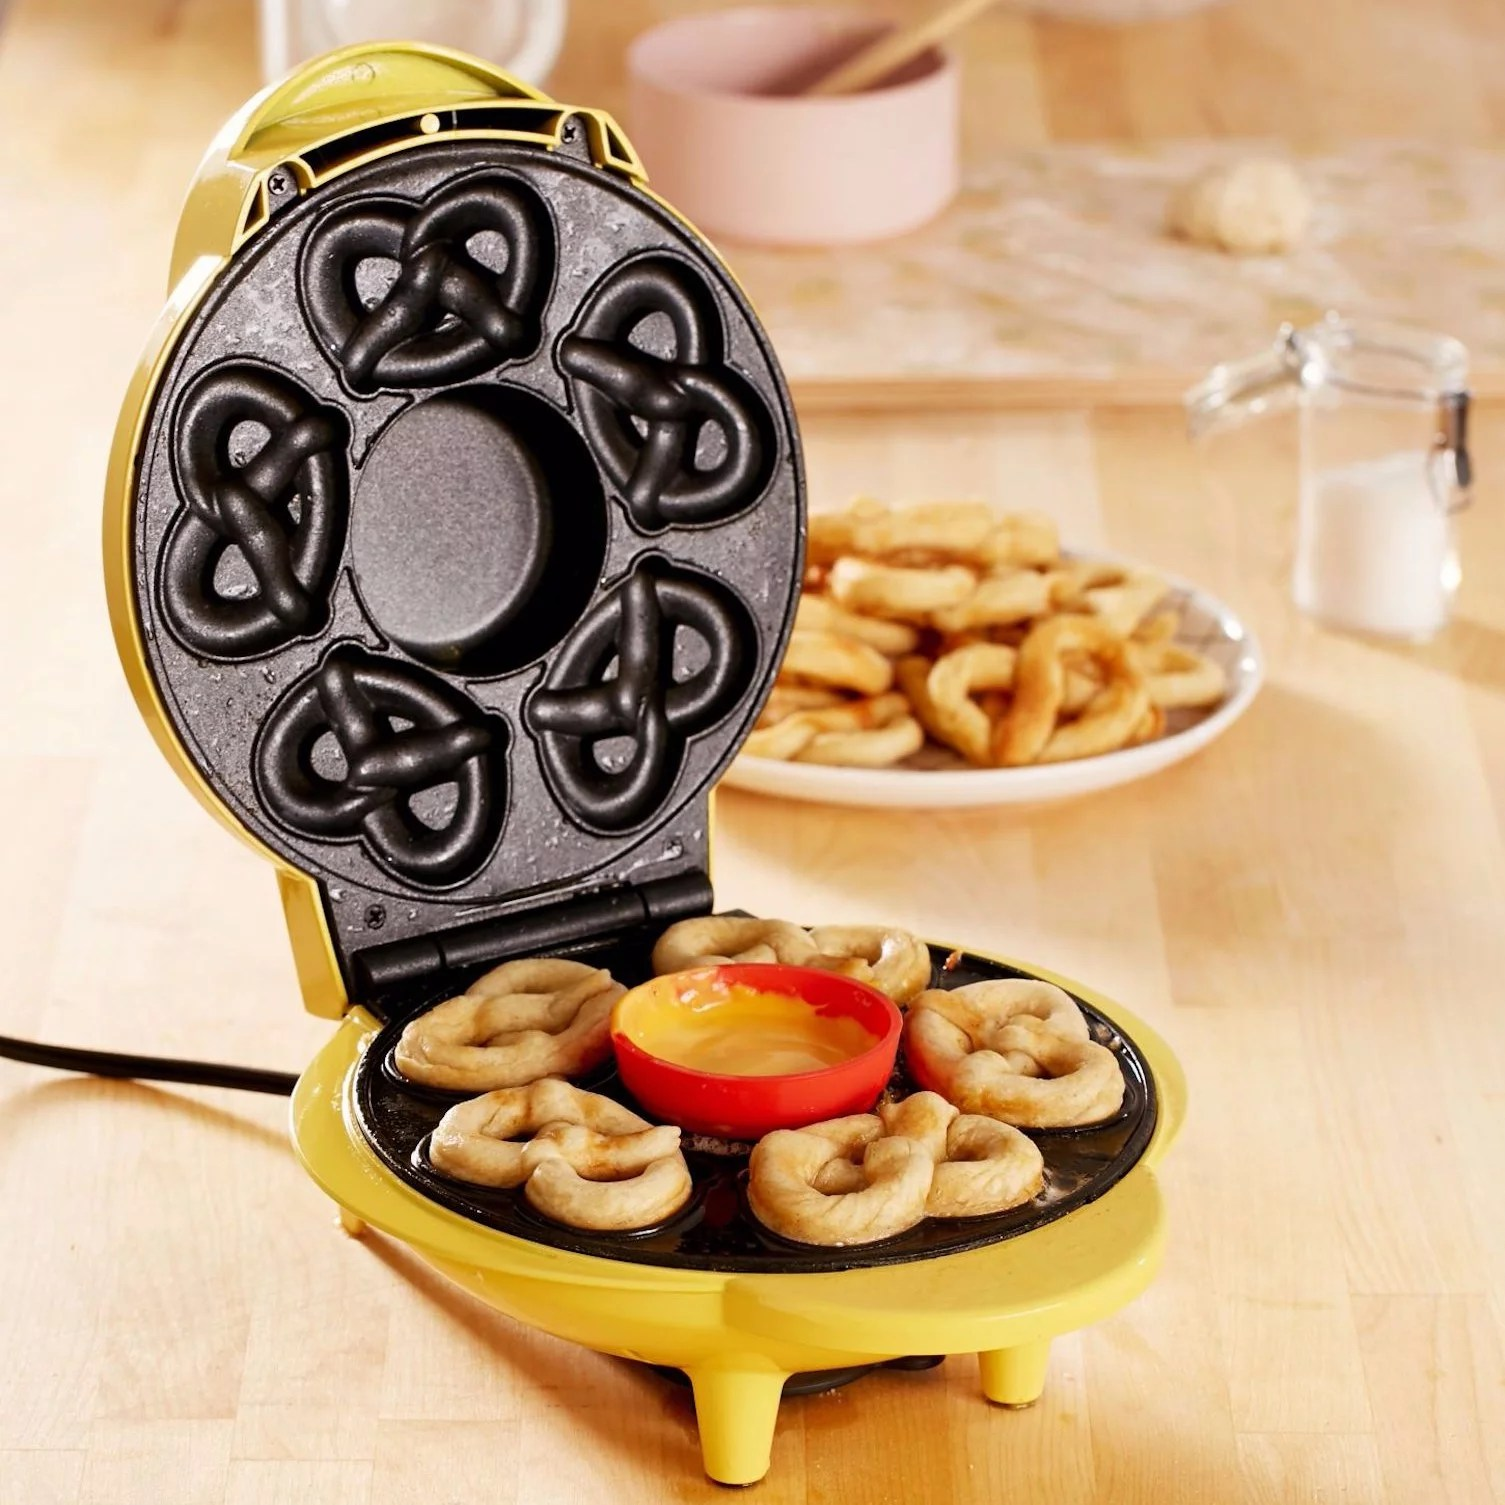 Gadget Cuisine Cool Cooking Gadgets From Urban Outfitters Popsugar Food